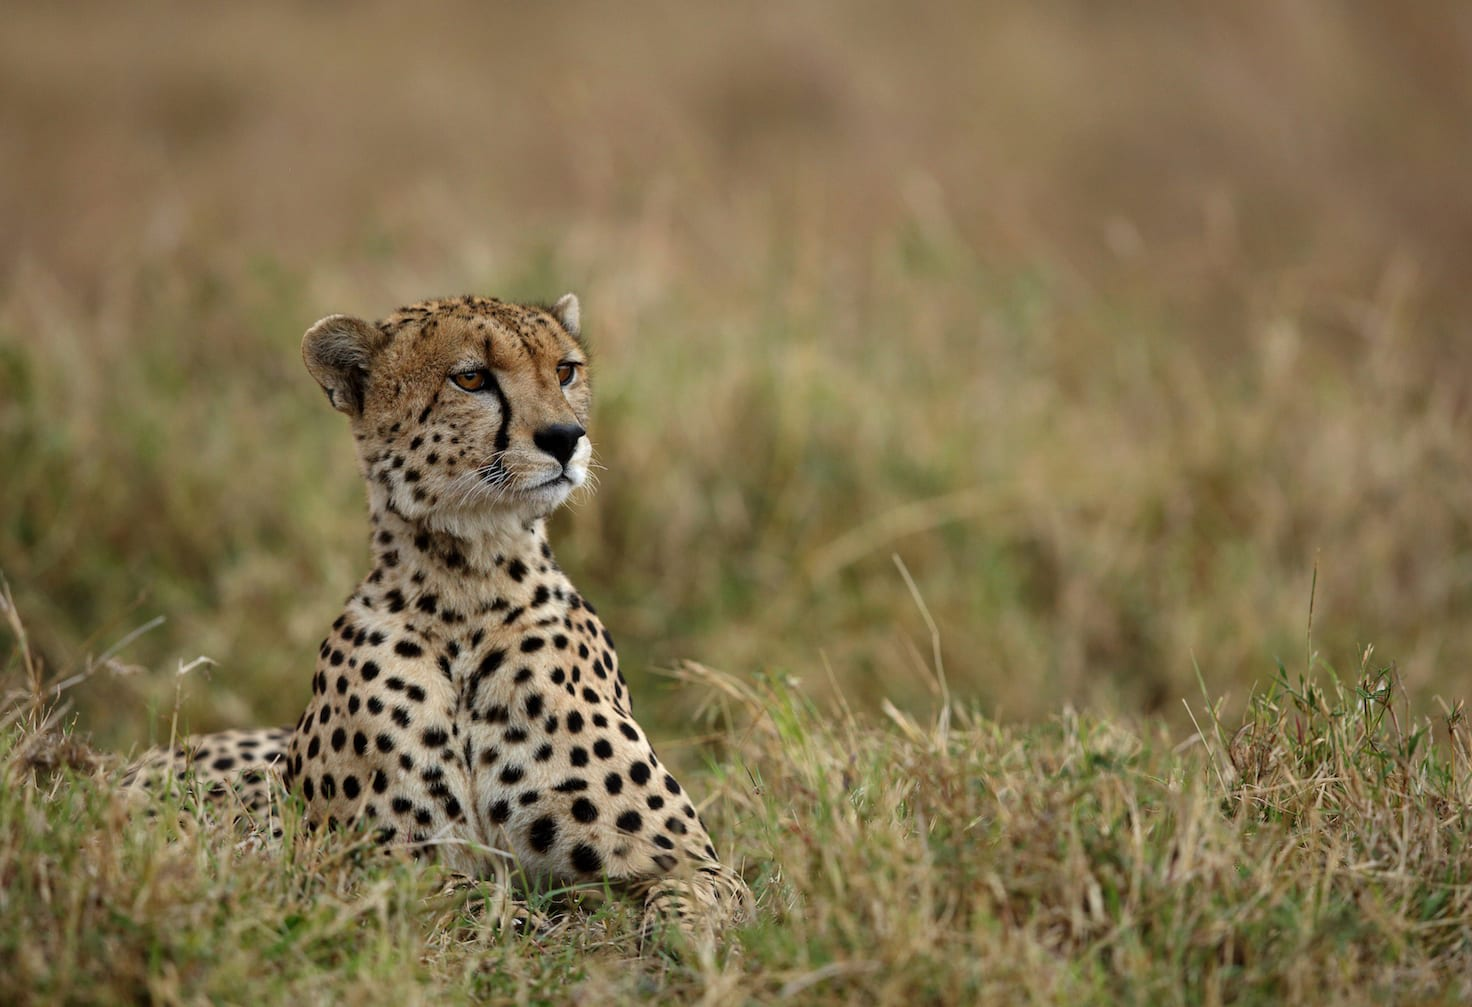 The cheetah population across the world is in grave danger, thanks to shrinking grasslands. Over the last century, cheetahs have gone locally extinct in at least 21 countries, and their numbers continue to fall. Photo: Dr Ajay Kumar Singh/Shutterstock